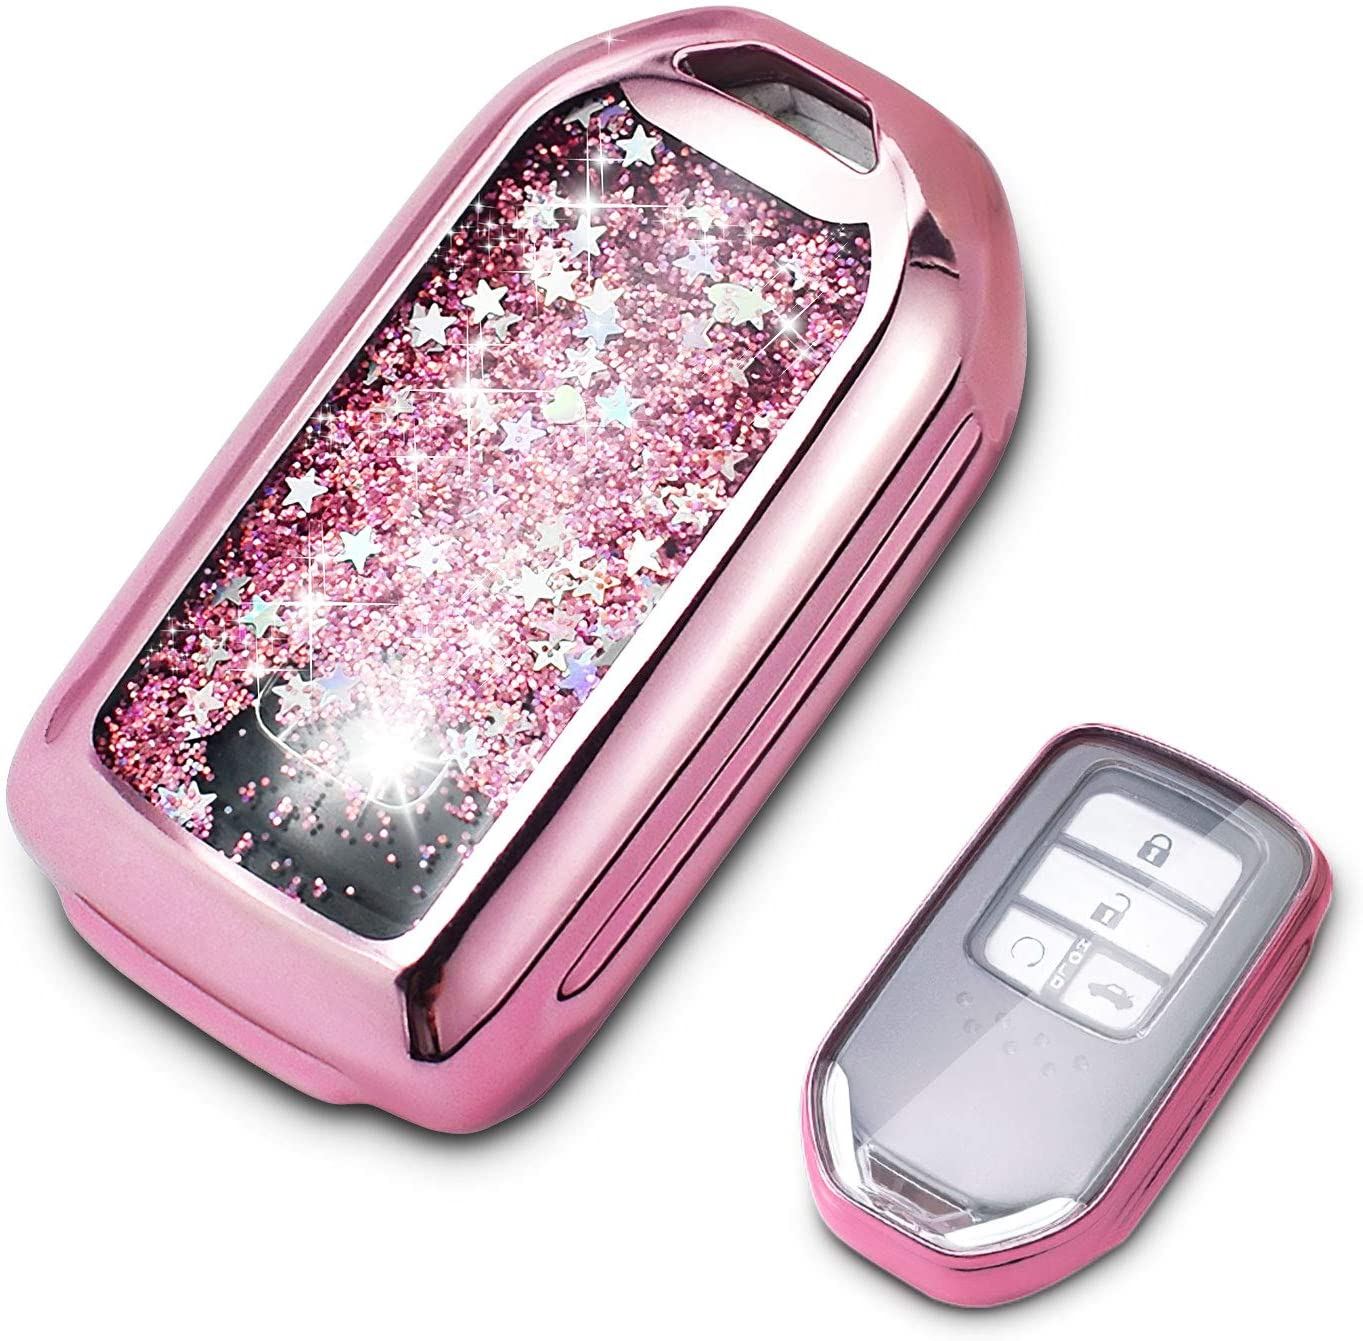 QIAOBA Car Key FOB Cover Honda Tampa Mall Sales of SALE items from new works Protection for